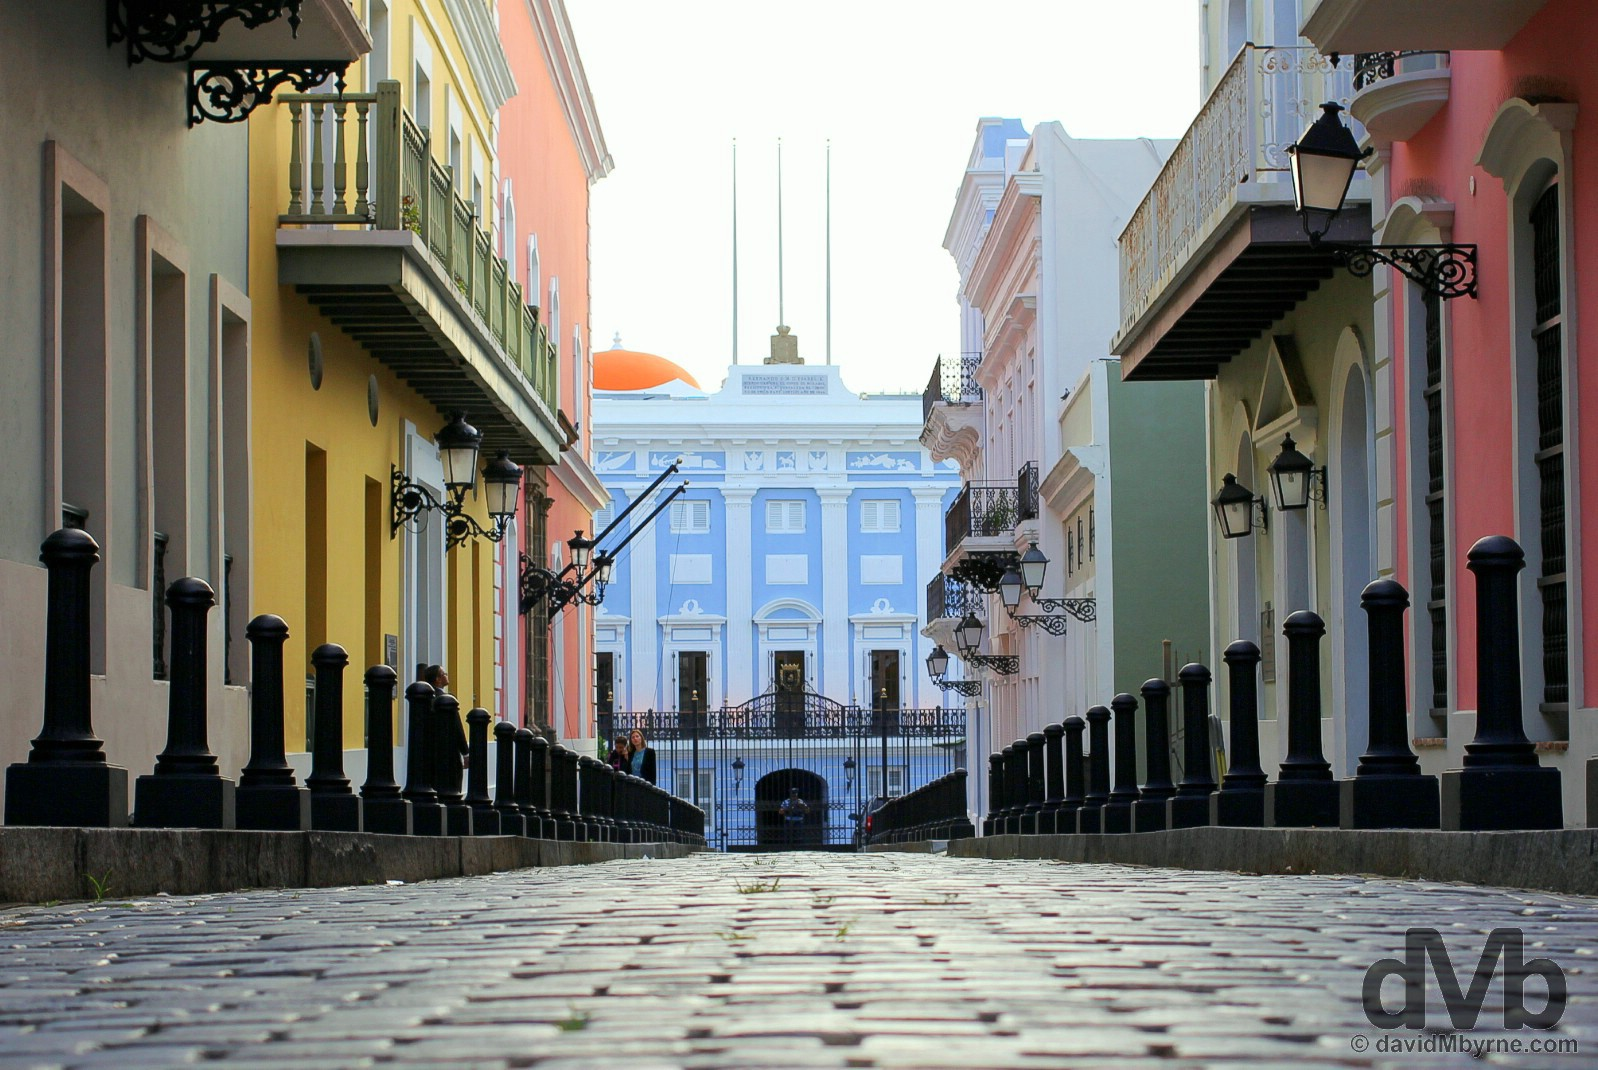 Old San Juan, Puerto Rico, Greater Antilles. June 2, 2015.